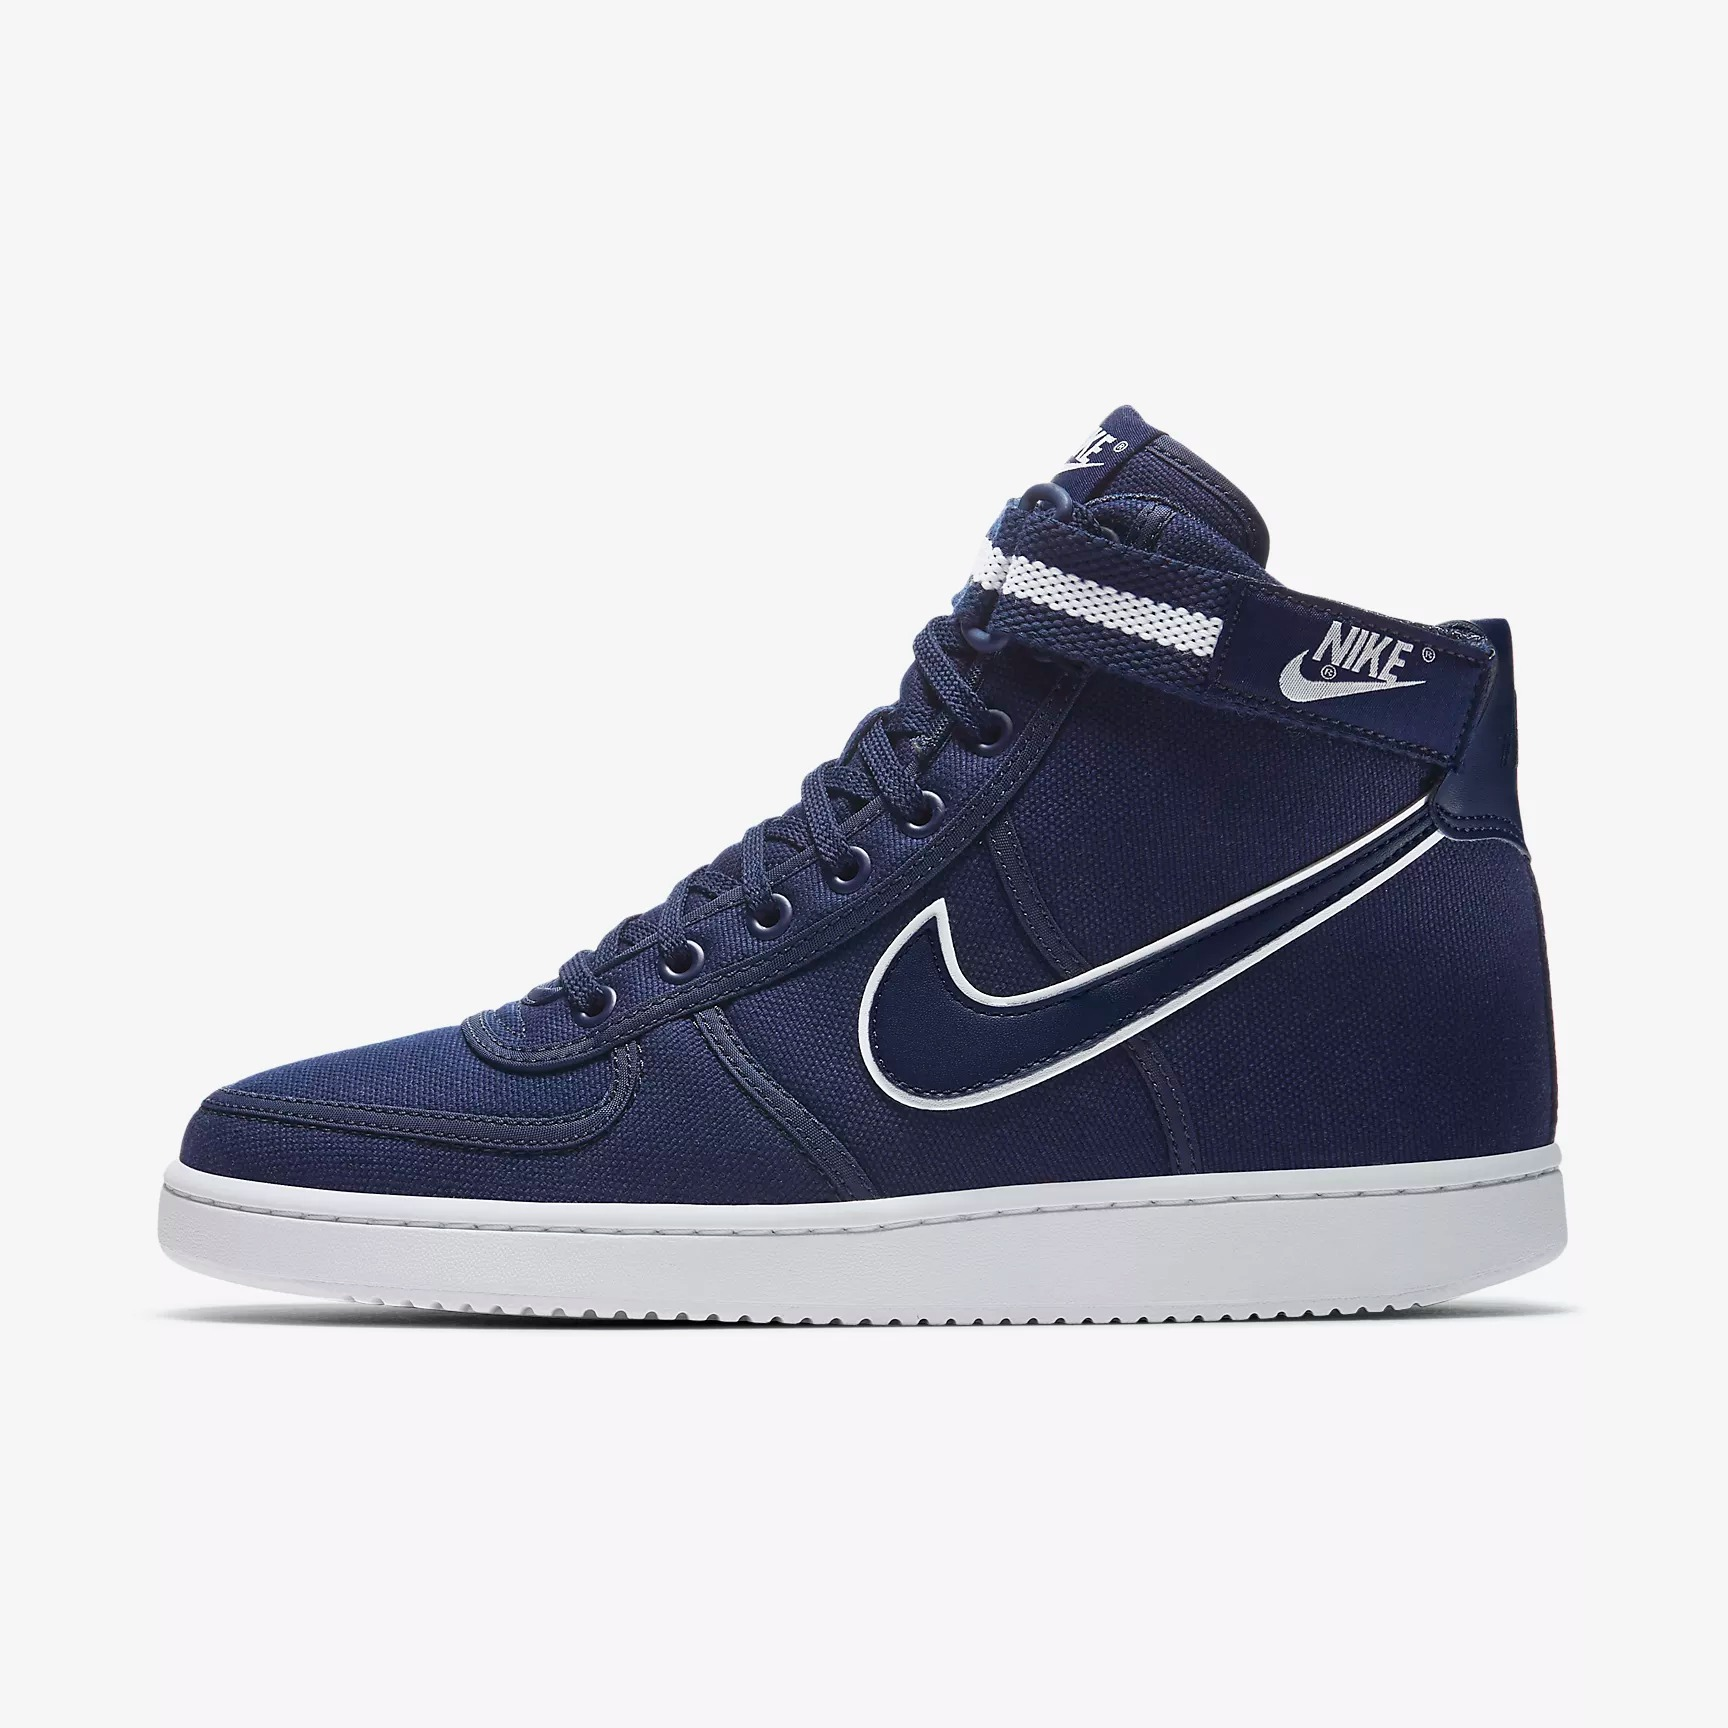 nike vandal high supreme sneakers sport shoes athletic shoes and sneakers. Black Bedroom Furniture Sets. Home Design Ideas